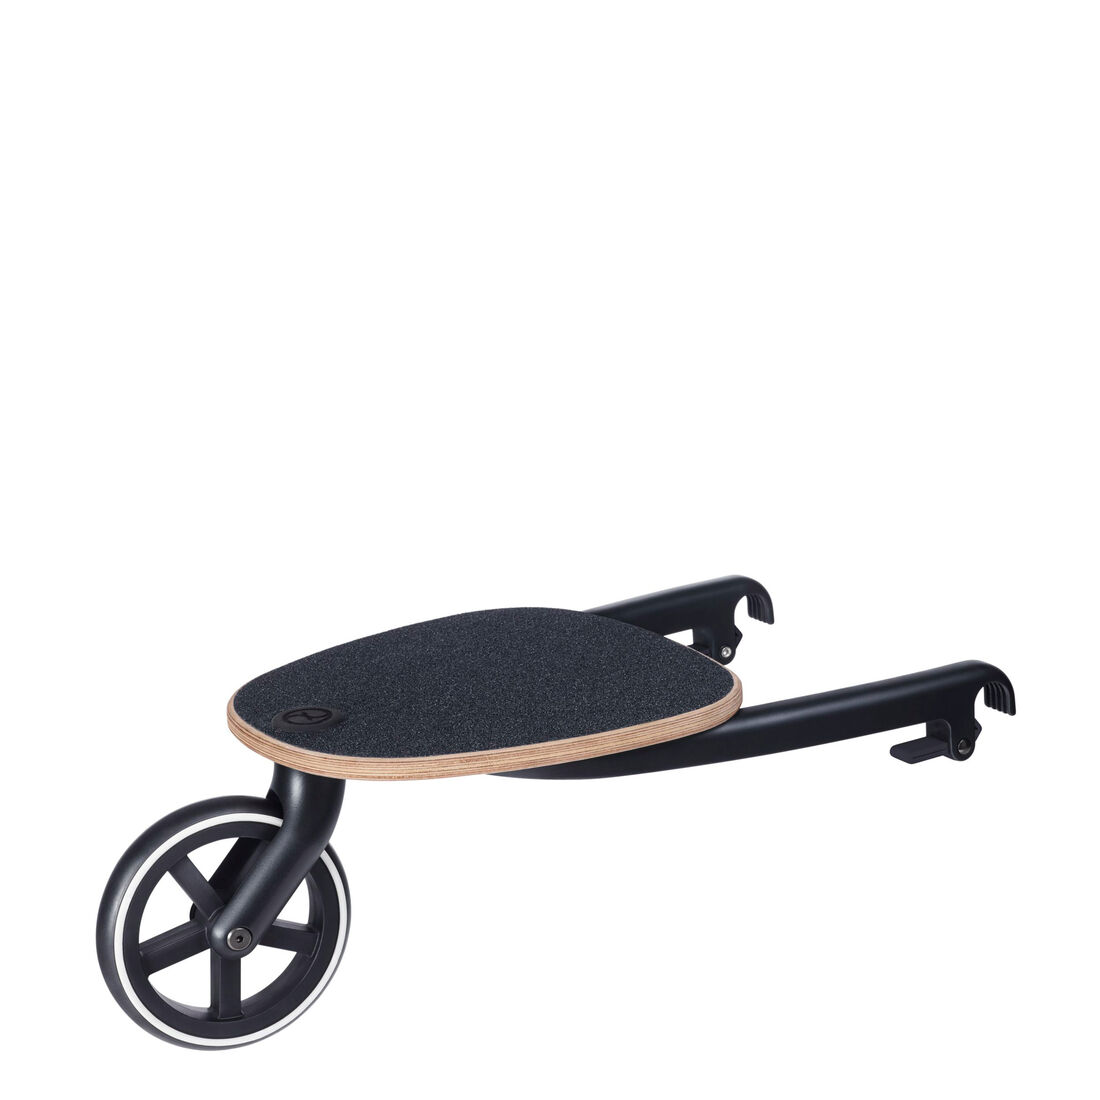 CYBEX Kid Board - Black in Black large